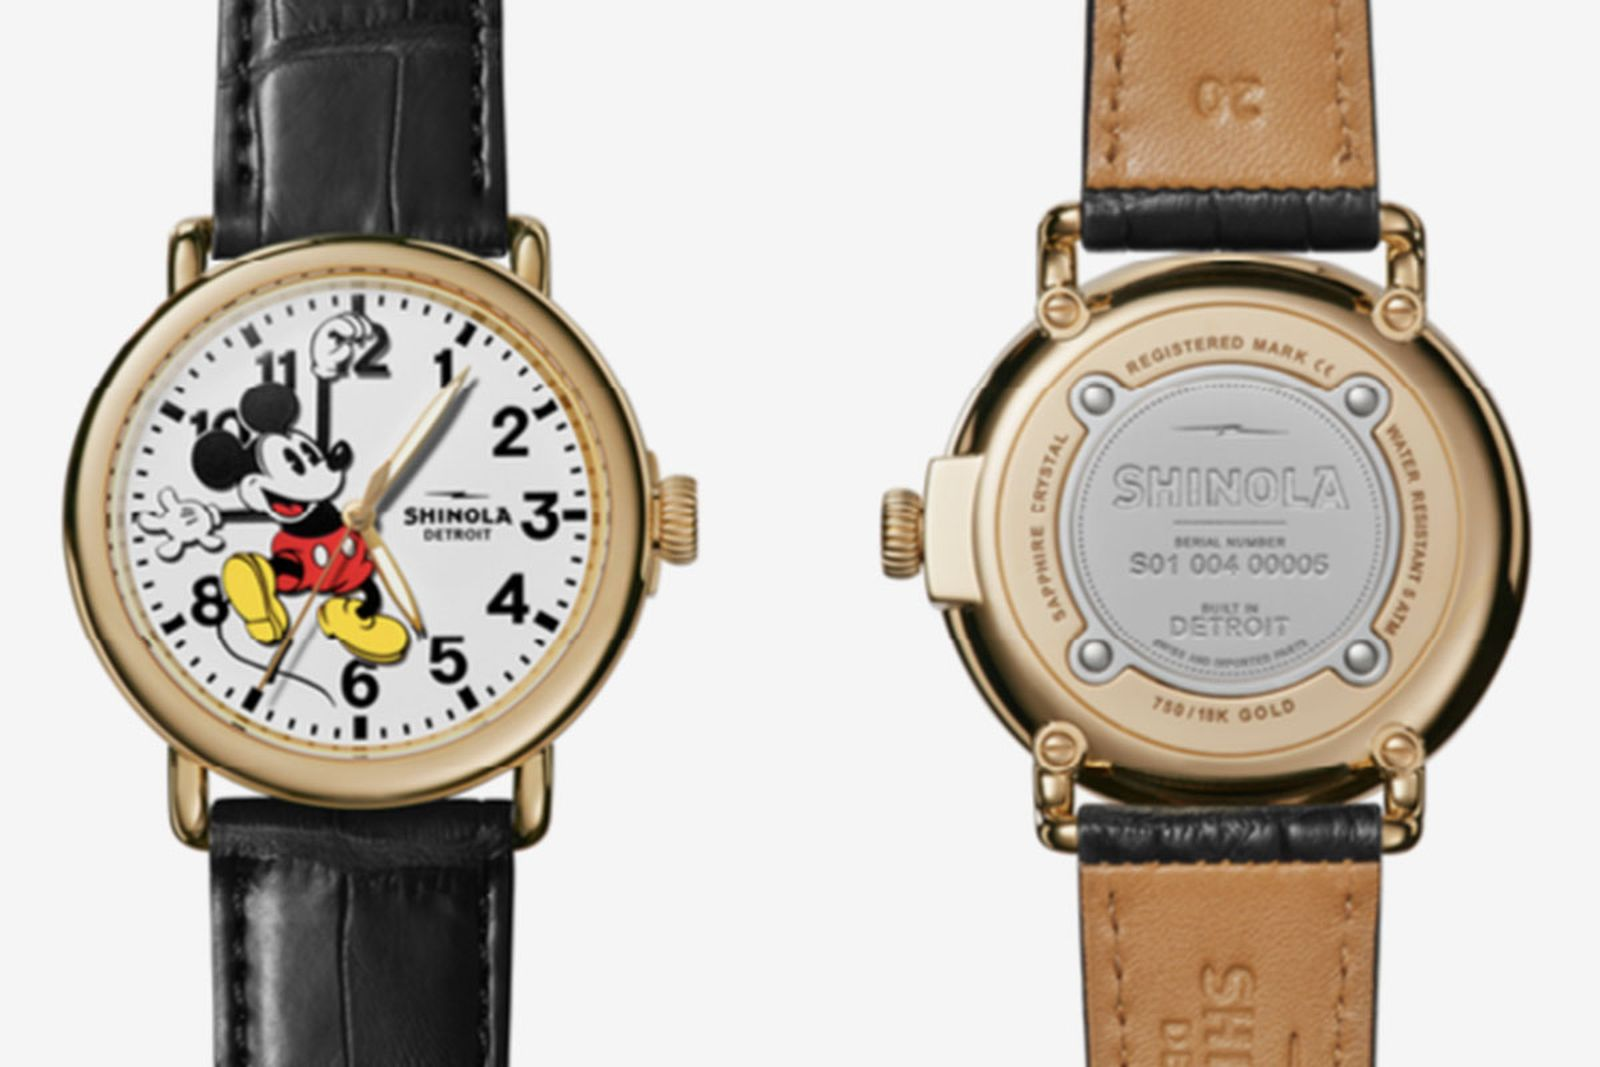 StockX 18k Gold Shinola Disney Watch